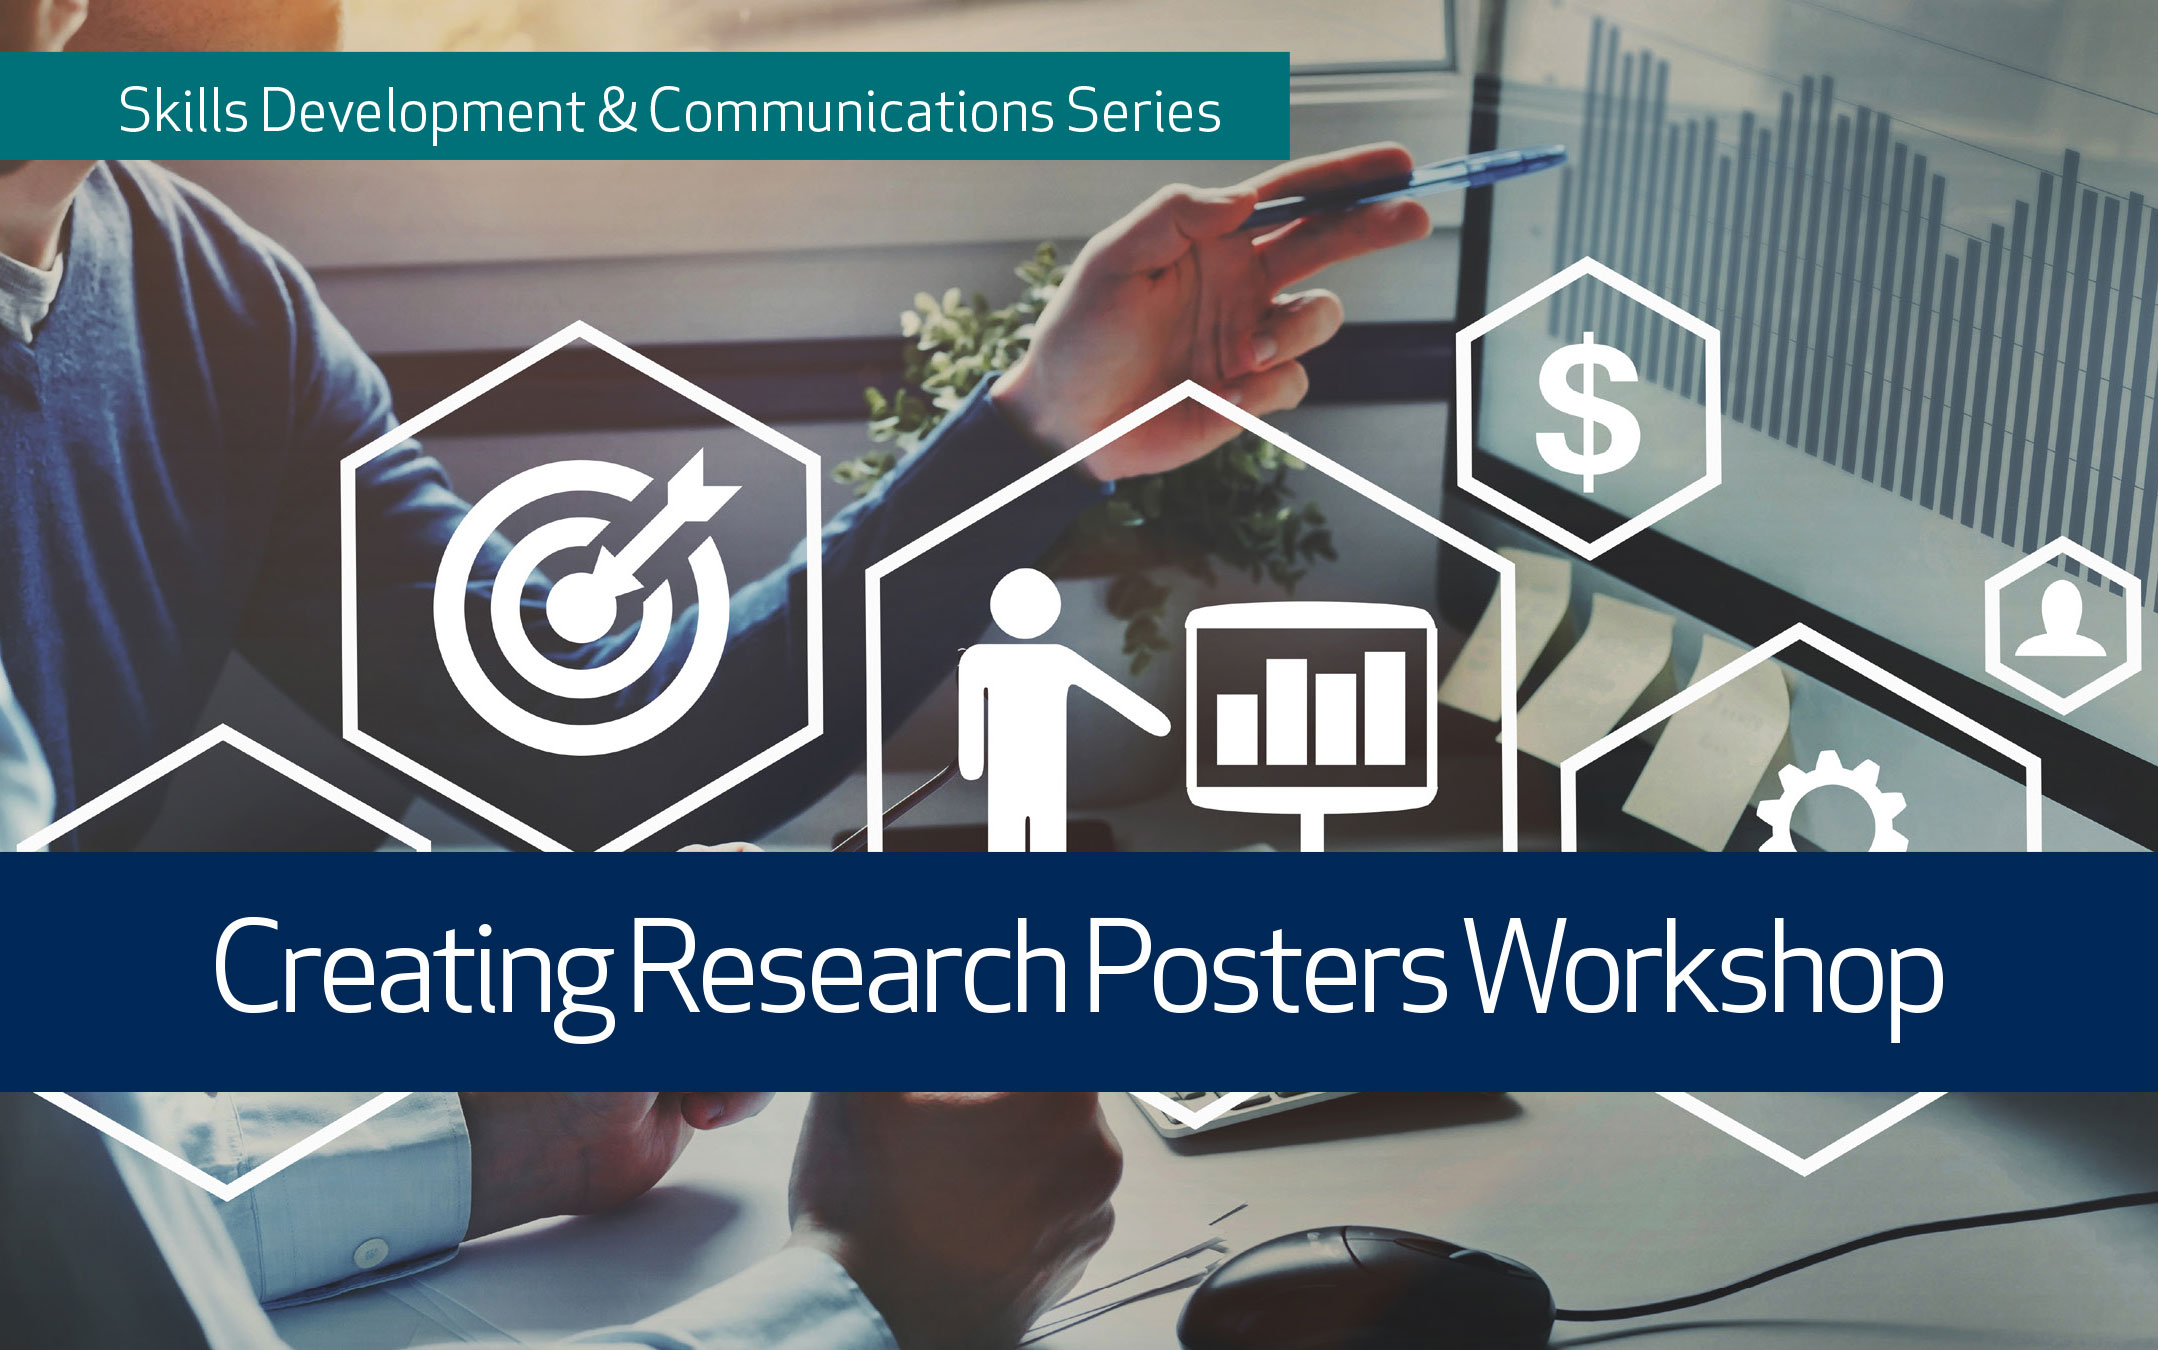 Creating-Research-Posters-Workshop_Cvent_518x324-new